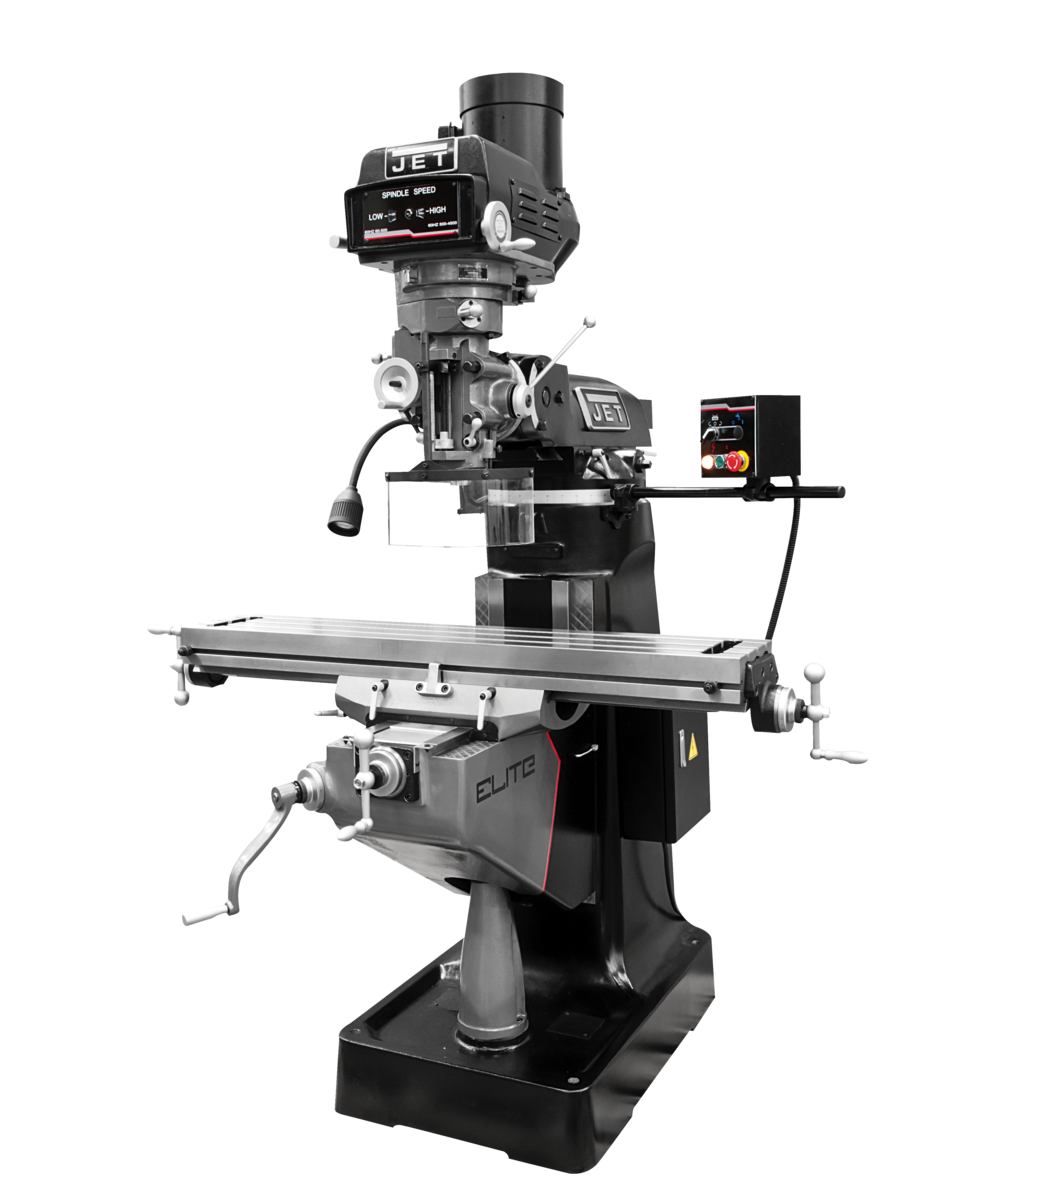 ETM-949 Mill with 3-Axis ACU-RITE 203 (Quill) DRO and Servo X-Axis Powerfeed and USA Air Powered Draw Bar